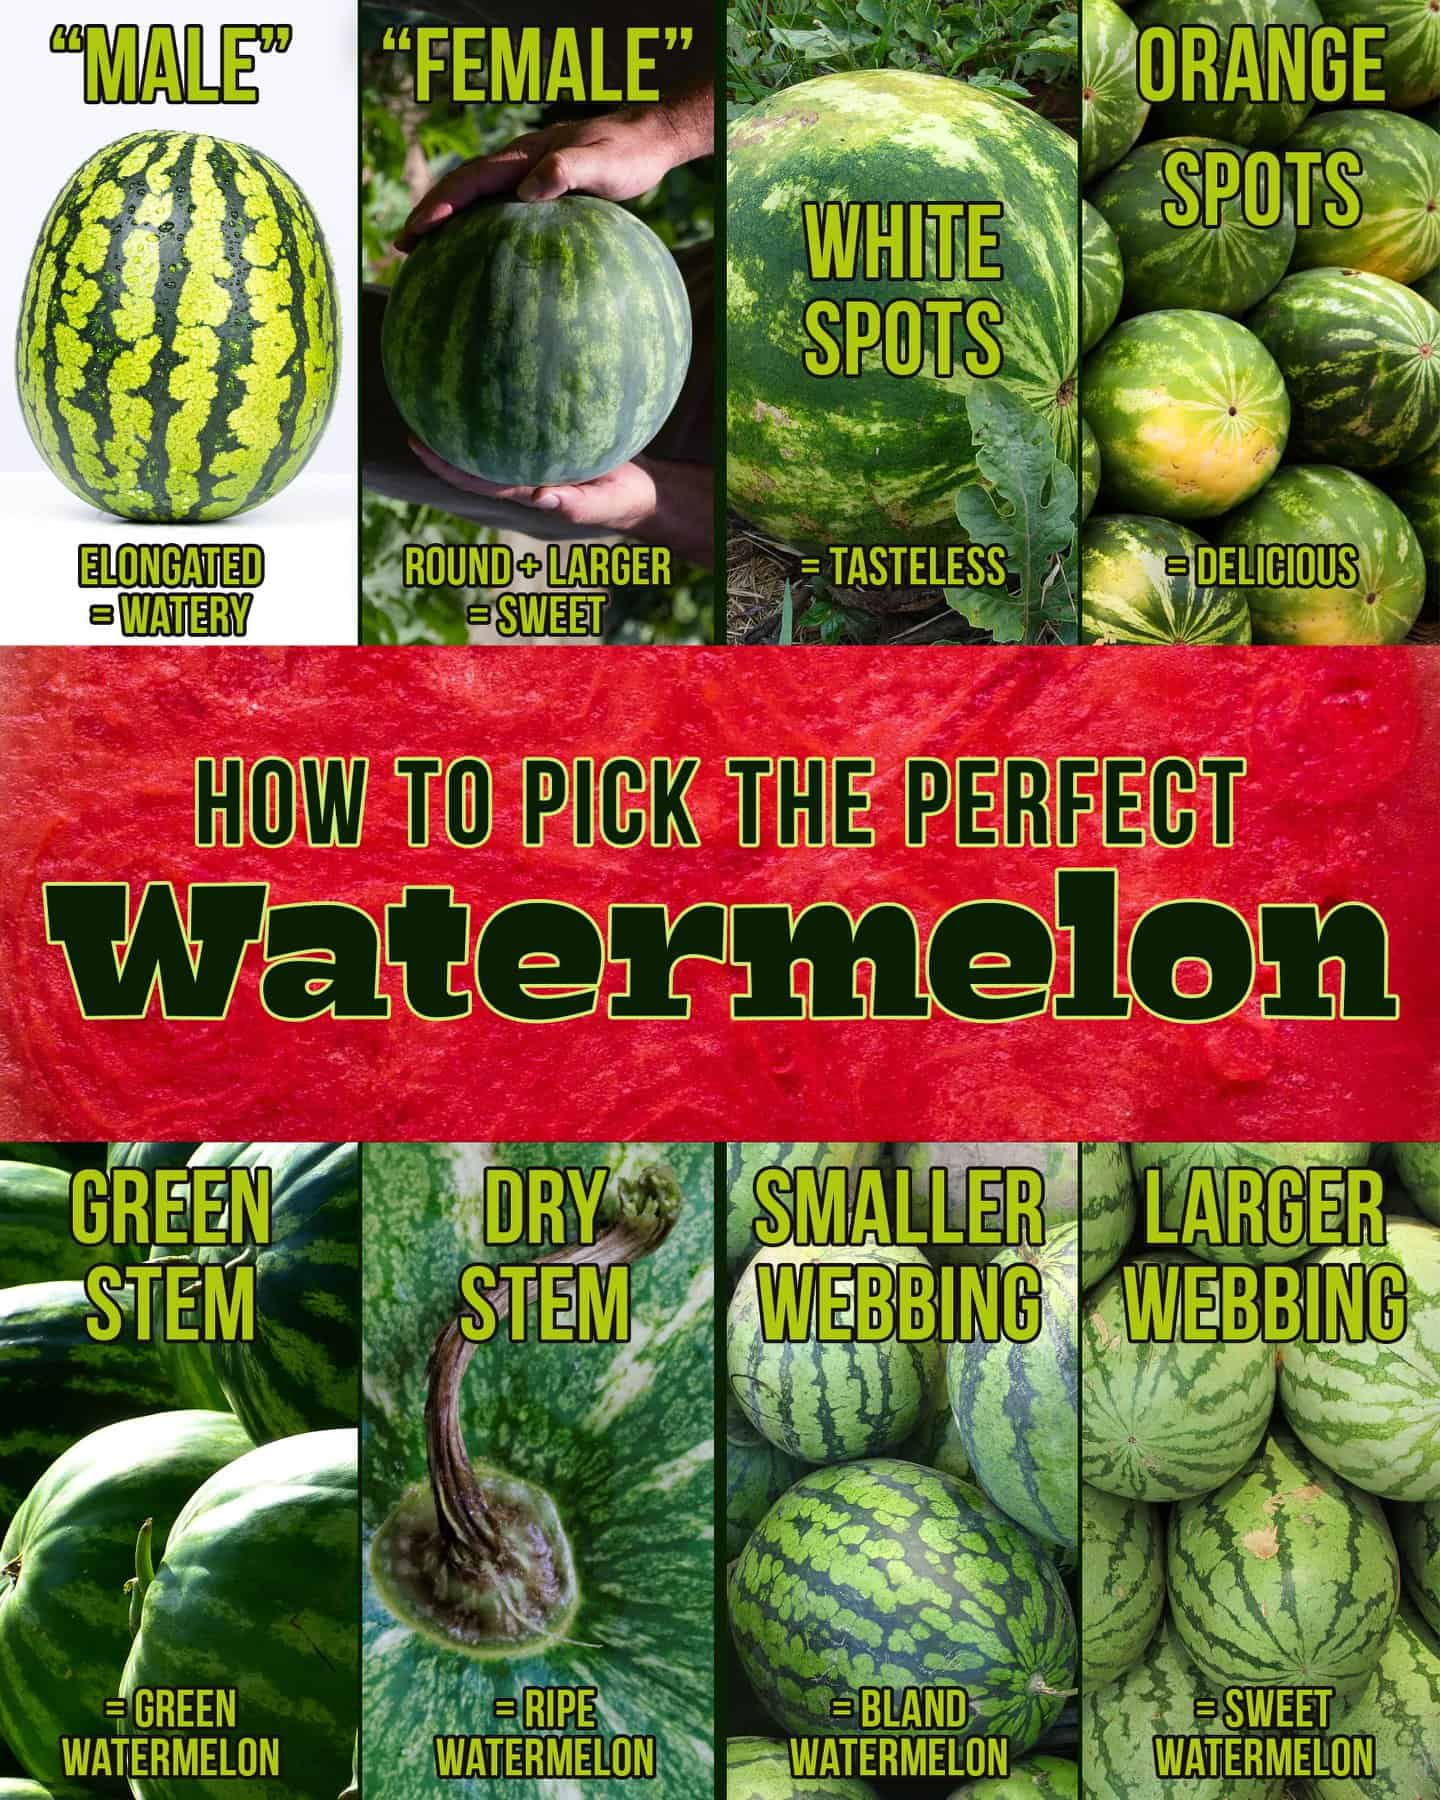 Visual guide to picking the perfect watermelon. Elongated watermelons are watery. Round watermelons are sweeter. White spots mean they are tasteless. Orange spots are delicious. Green stems mean the watermelon isn't ripe while a dry stem means it is right. Smaller webbing means the watermelon is bland while larger webbing means it is sweet.